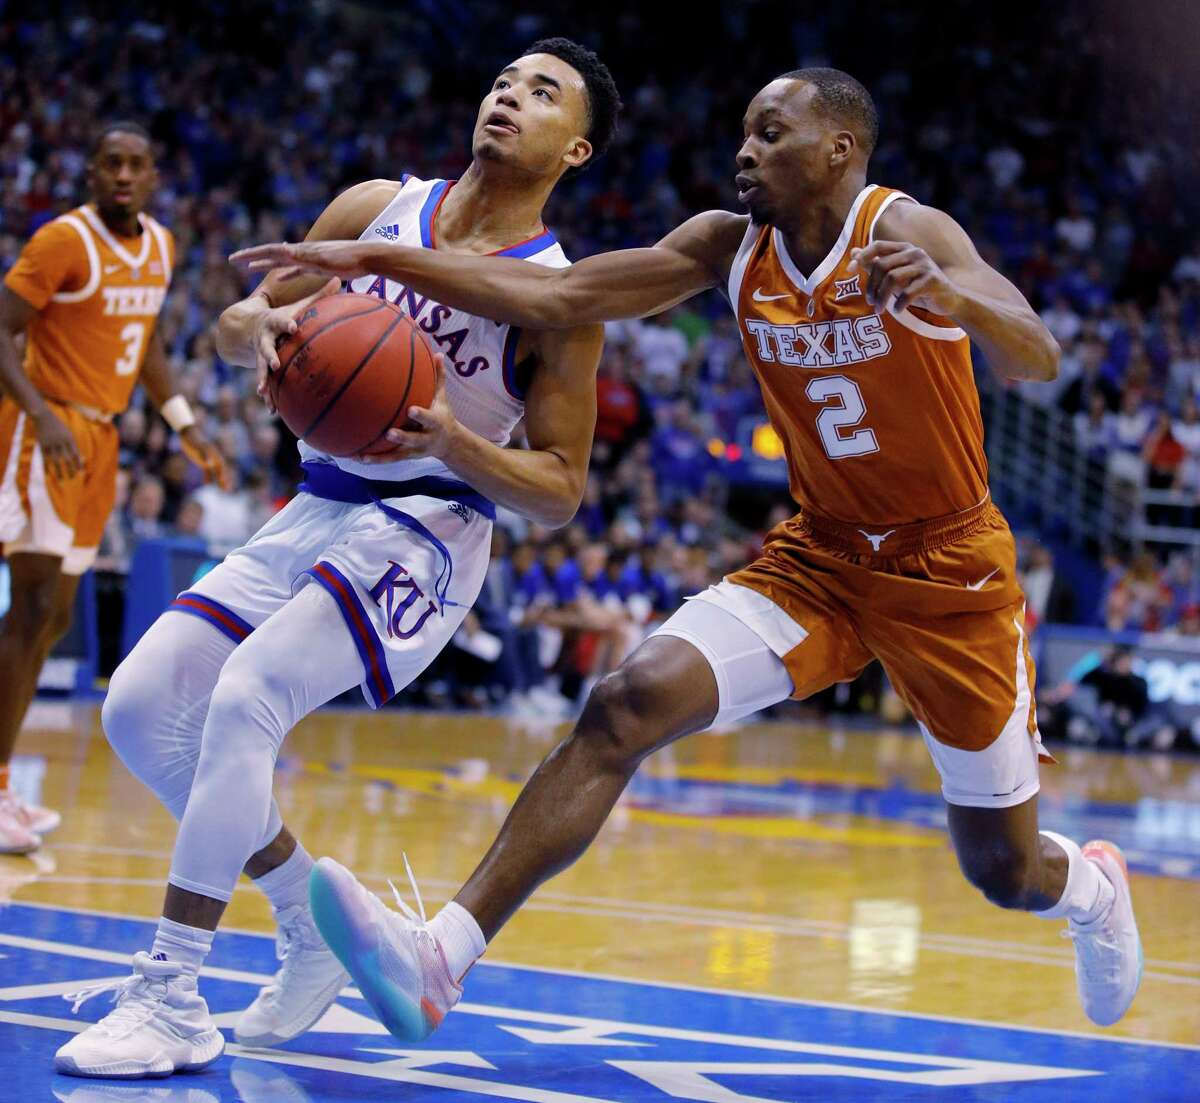 Texas guard Matt Coleman III (2) tries to steal the ball from Kansas guard Devon Dotson (11) during the first half of an NCAA college basketball game Monday, Jan. 14, 2019, in Lawrence, Kan.